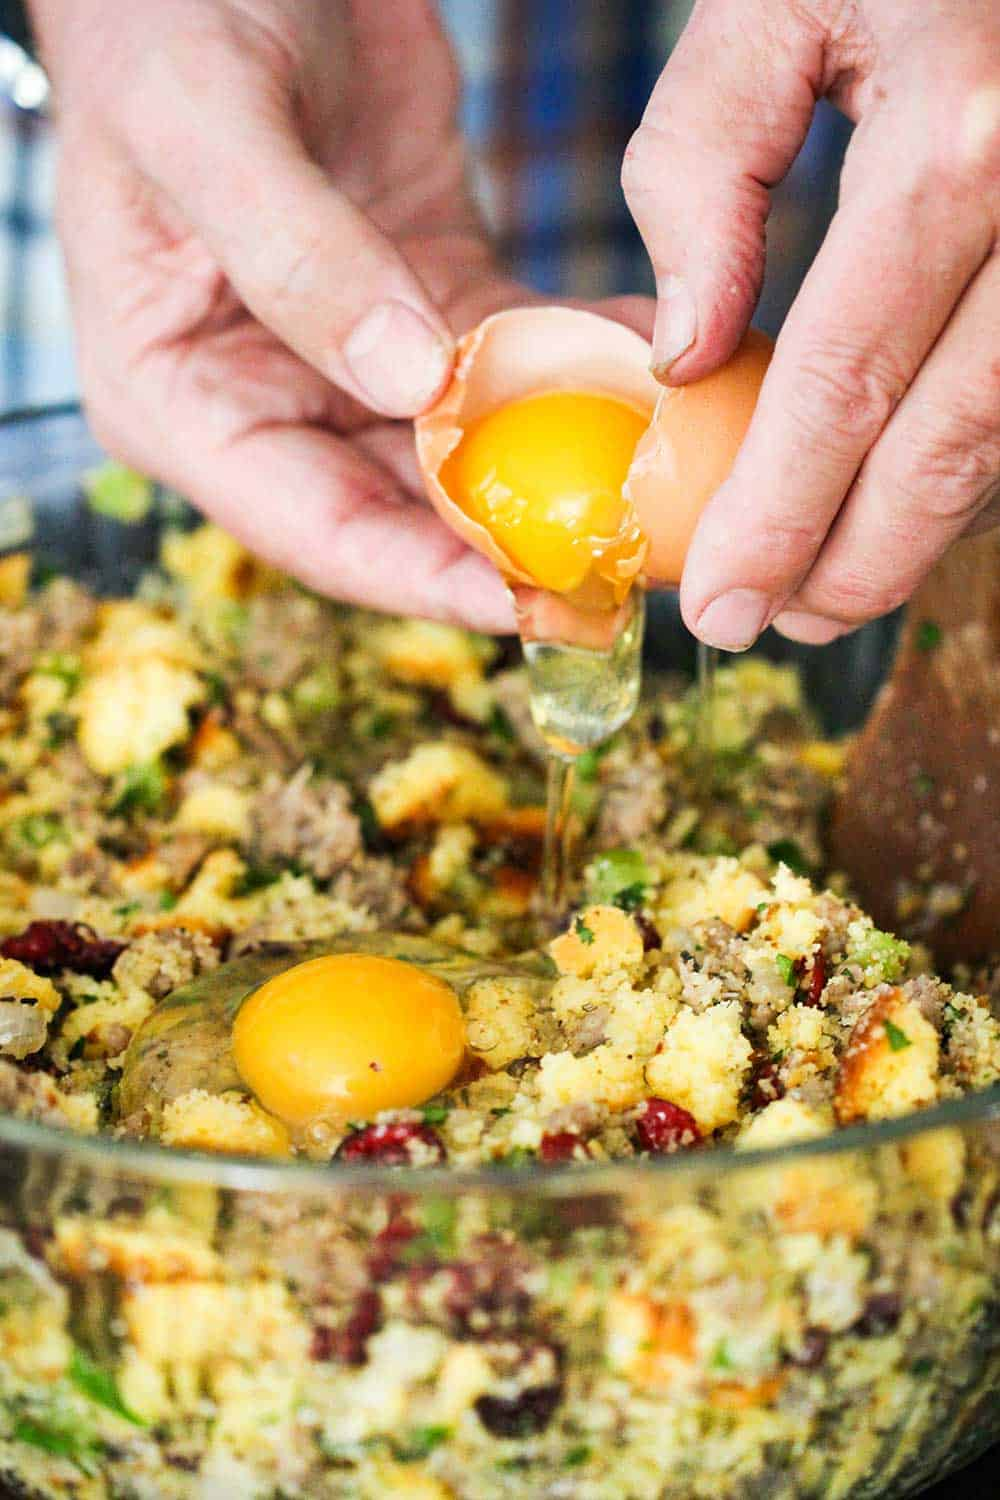 Two hands cracking an egg into a large glass bowl of cornbread dressing with sausage and cranberries.